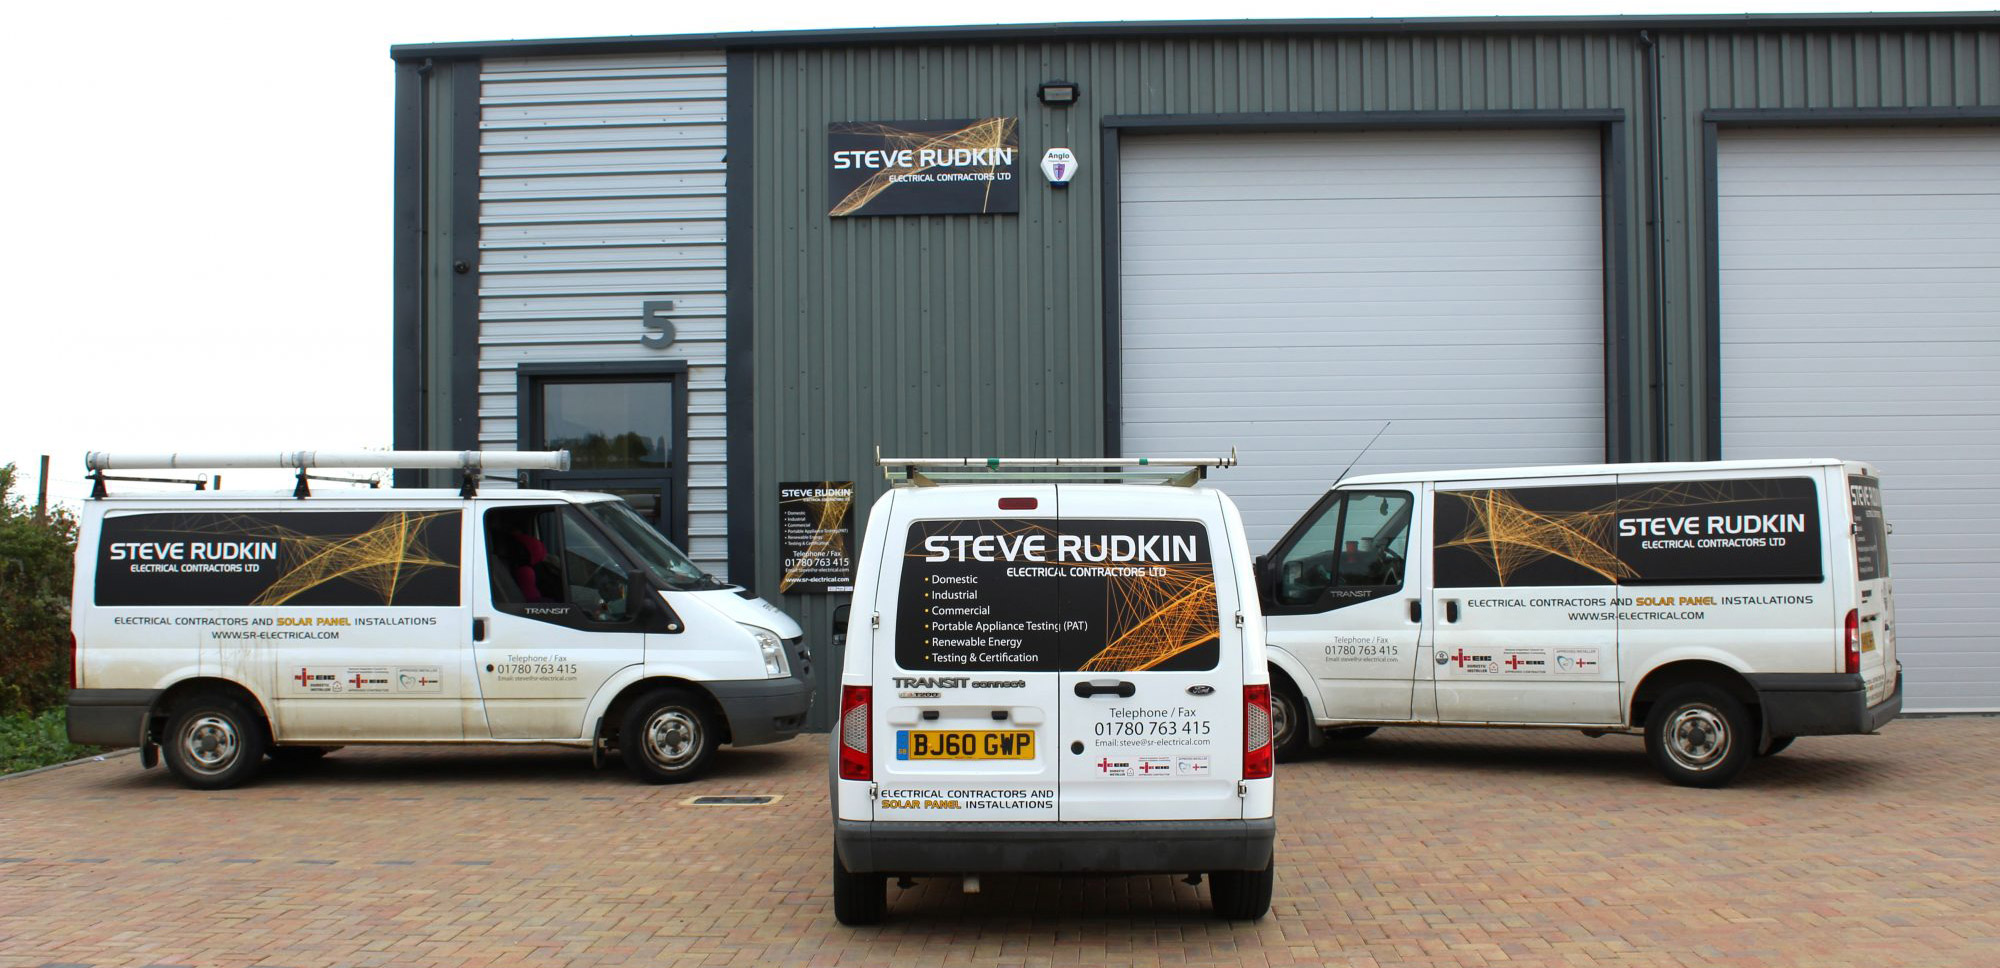 Steve Rudkin Electrical Contractors Ltd Casterton Offices